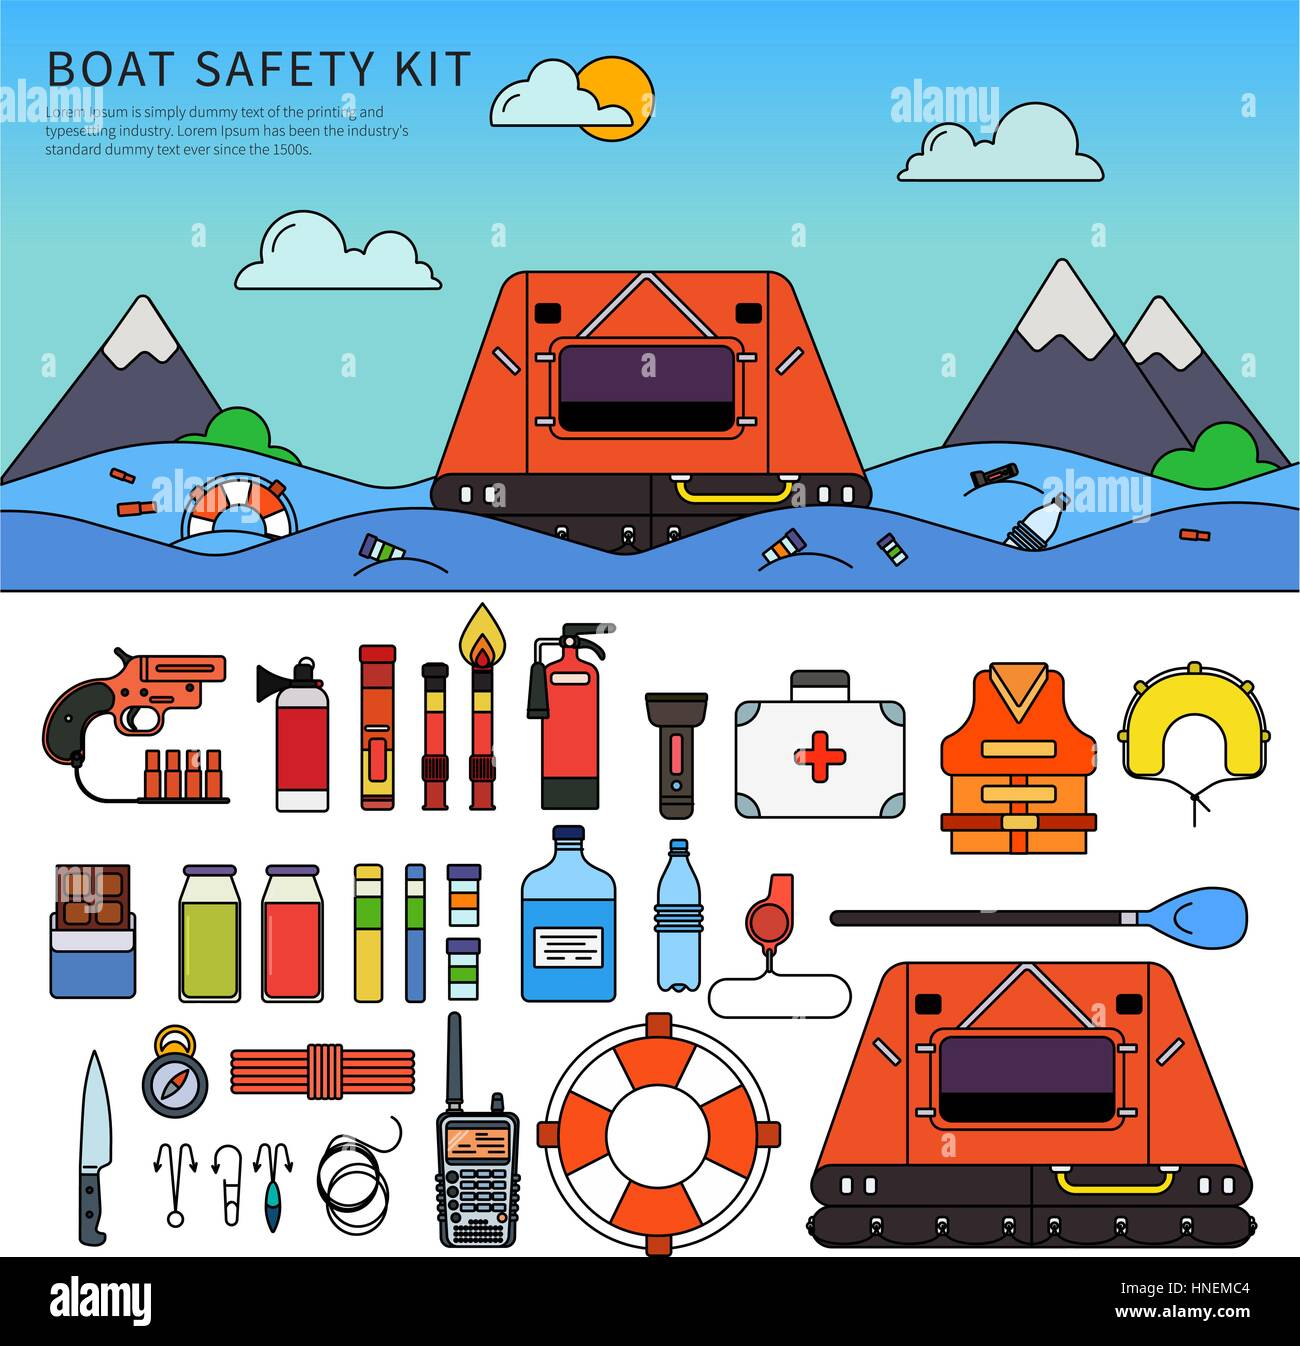 Boat safety kit. Different equipment for safety in the sea. Floating concept. Boat, life jacket, life buoy, fire - Stock Vector